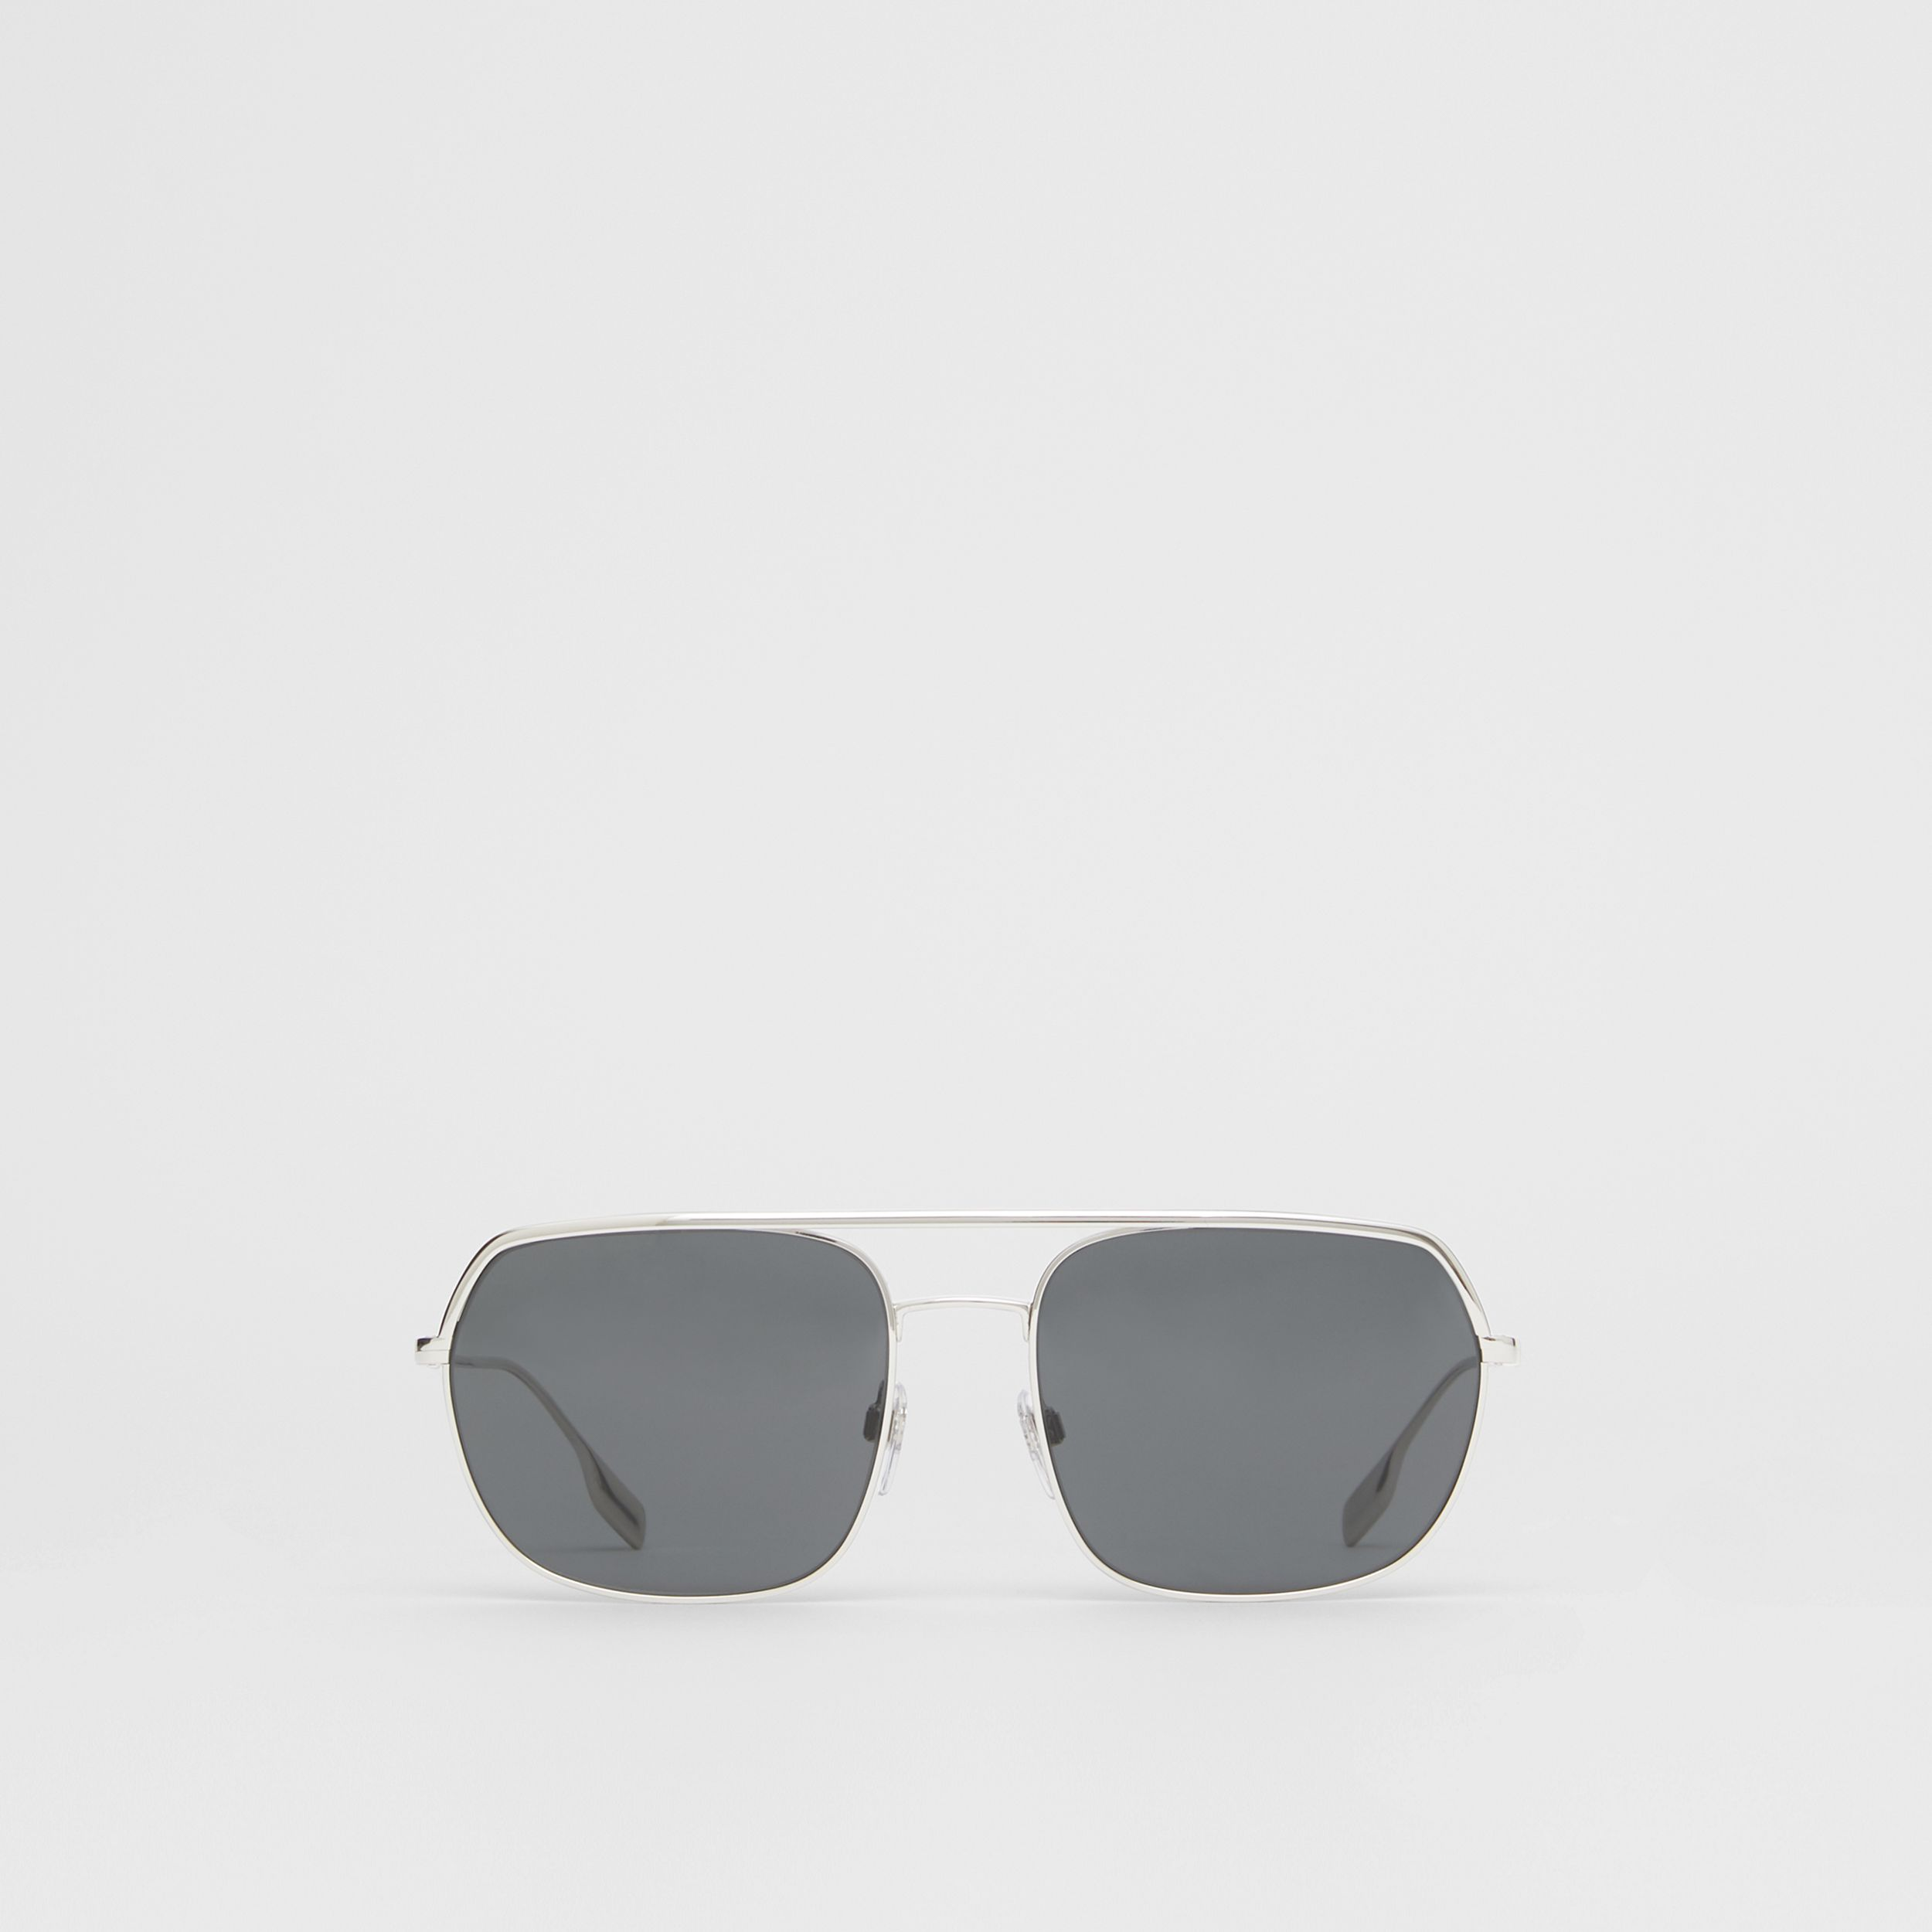 Square Pilot Sunglasses in Silver - Men | Burberry - 1